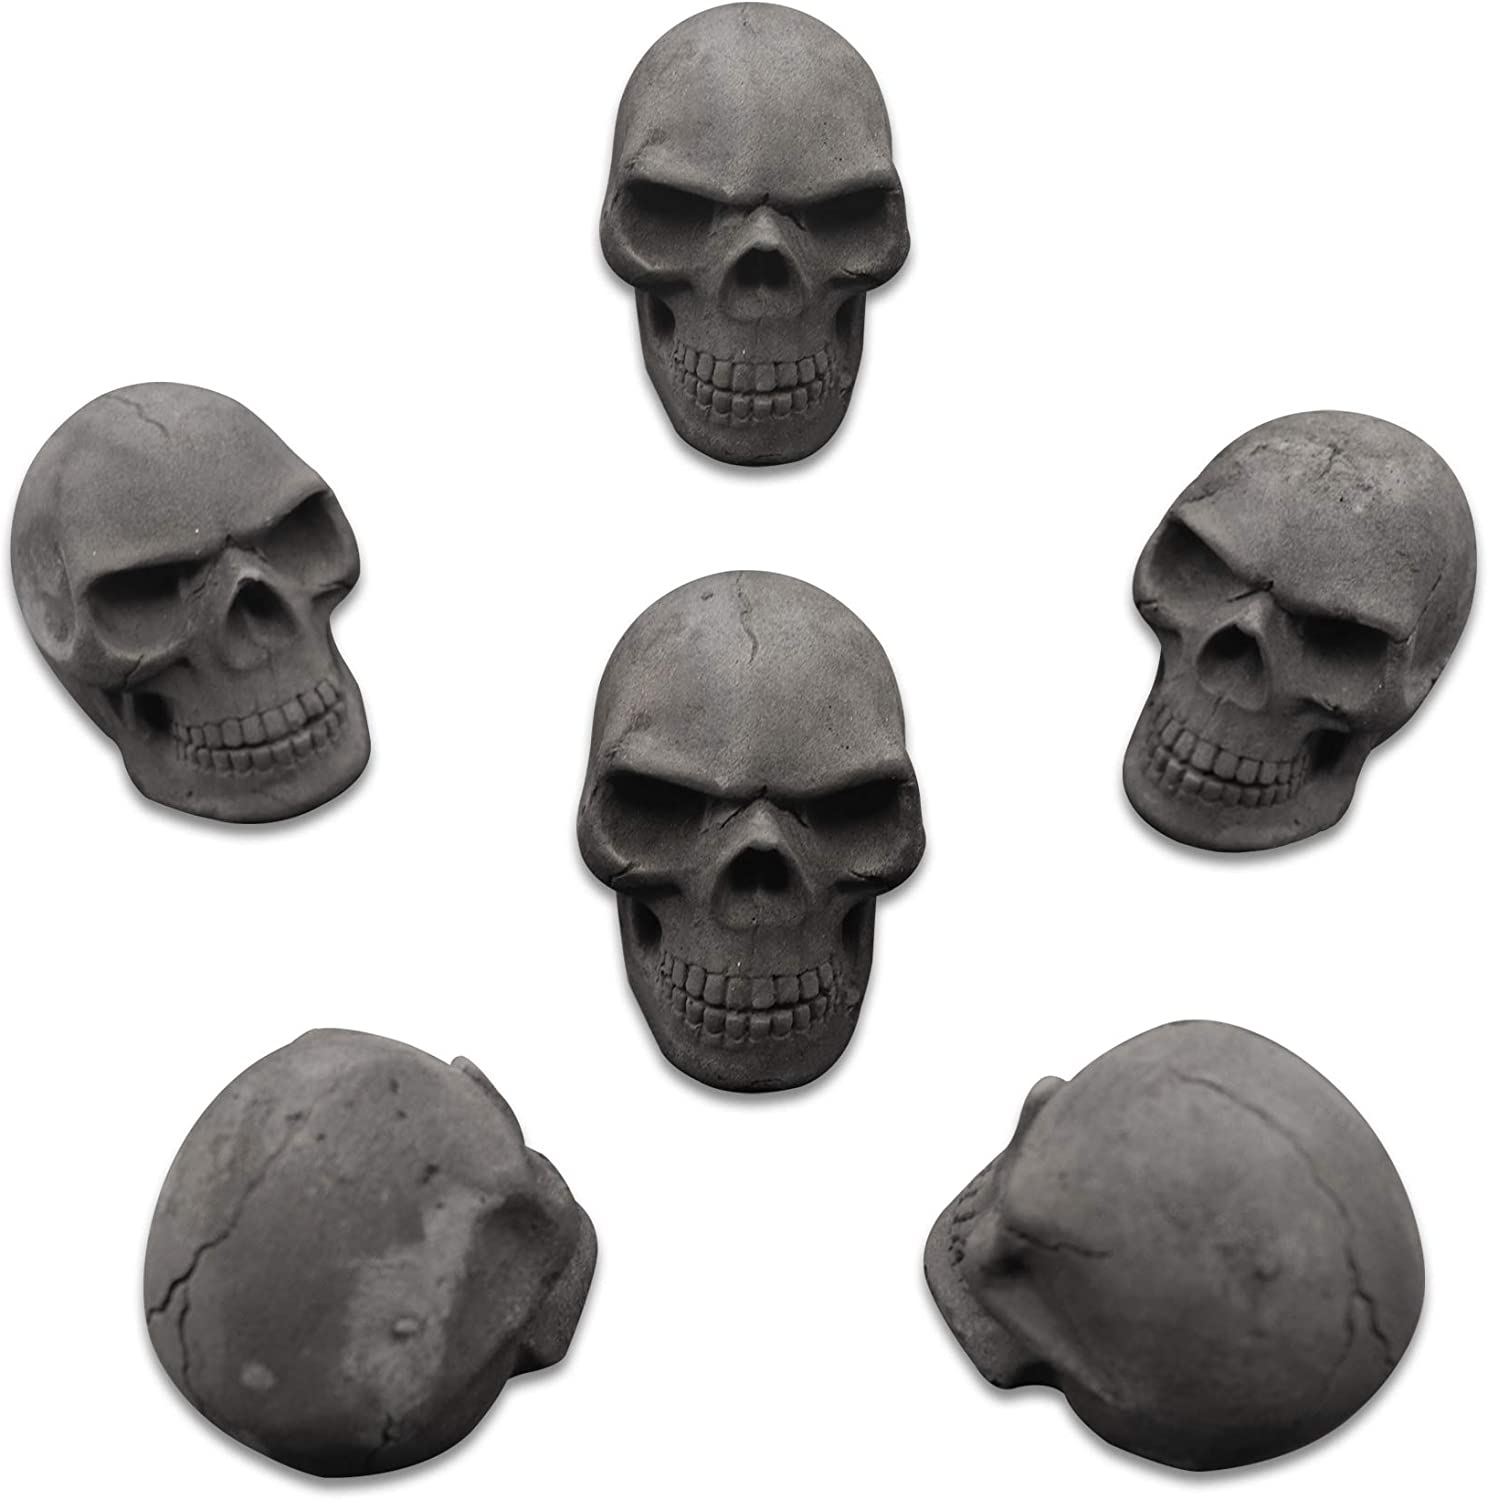 Gothic Charcoal Amazeng Burnable Imitated Human Skull Charcoal Handmade Qty 6, Black BBQ Charcoal Campfire for Indoor or Outdoor